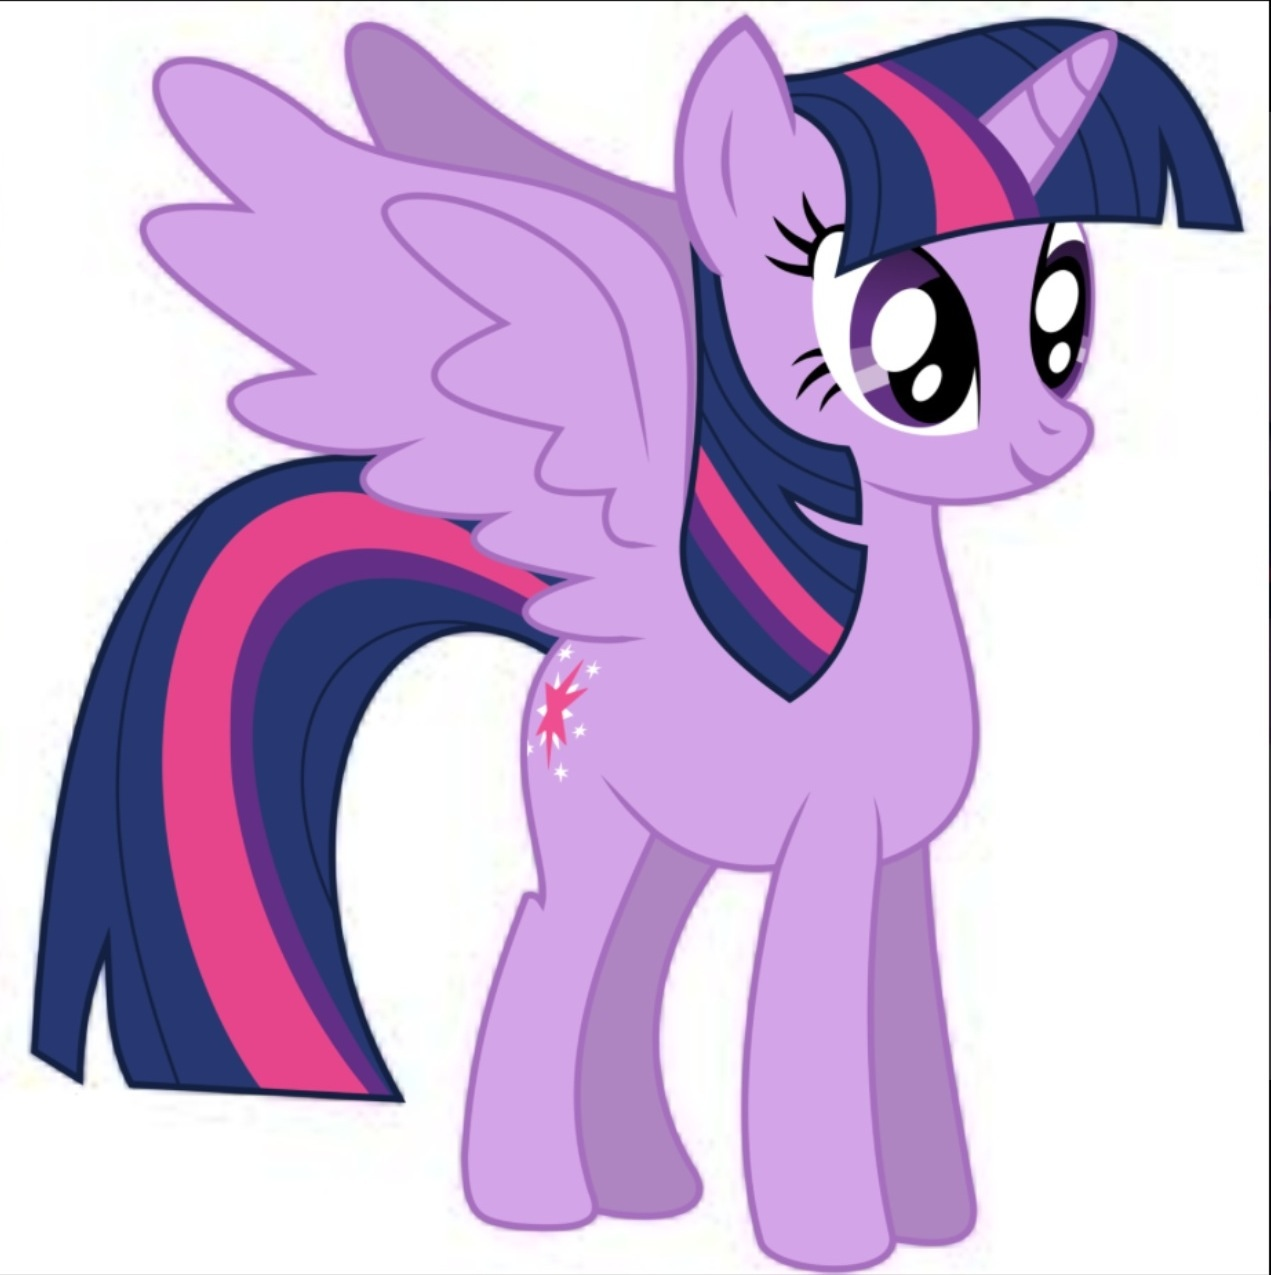 ... best pony. What are you going to do? - Sugarcube Corner - MLP Forums